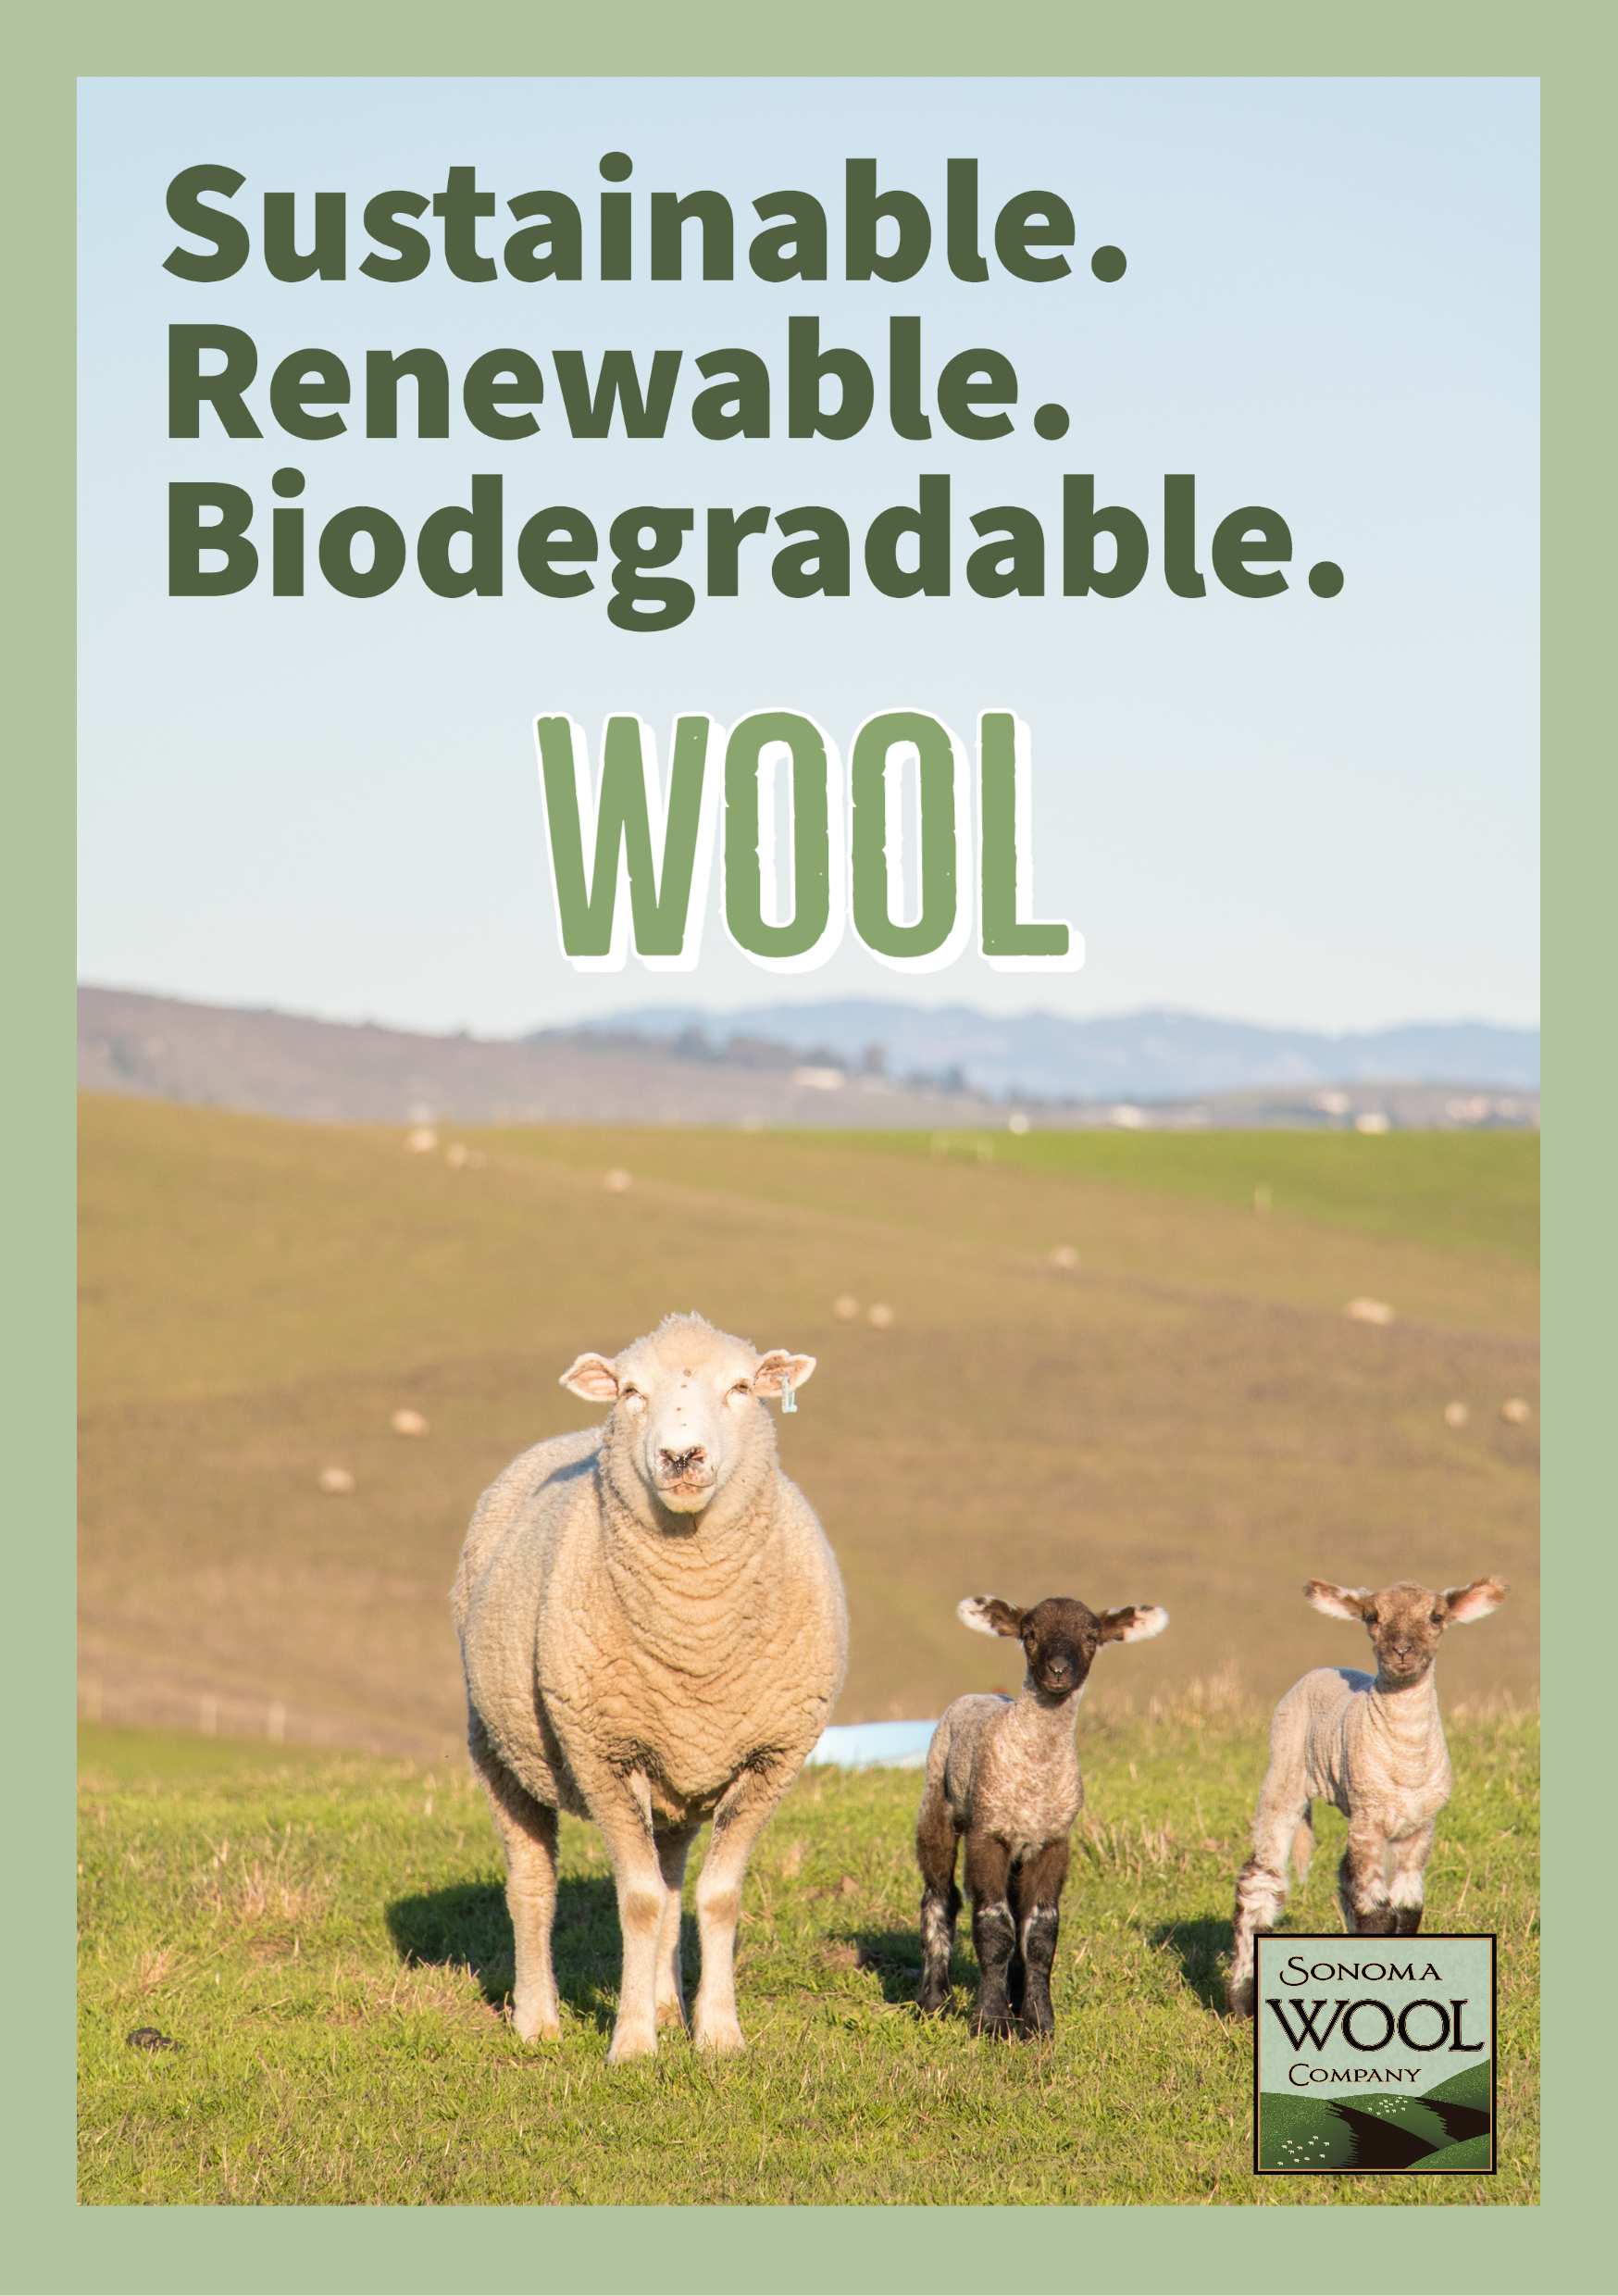 Wool is Sustainable, renewable, and biodegradable - Sonoma Wool Company